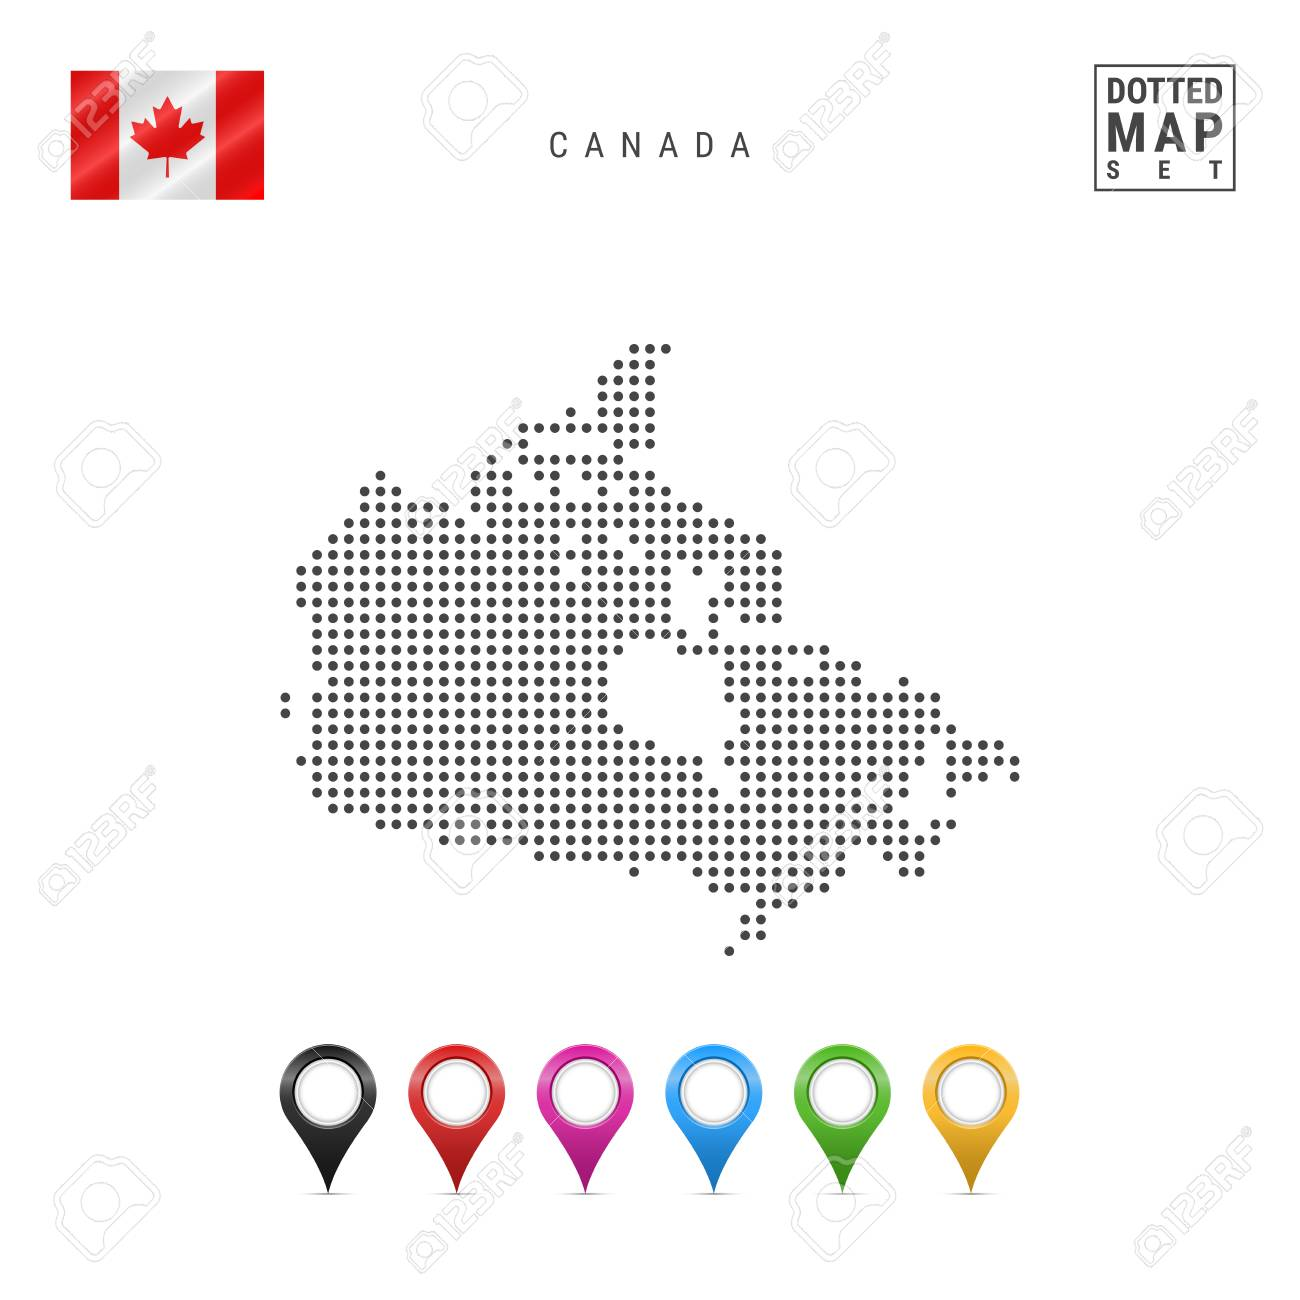 Map Of Canada Silhouette.Dotted Map Of Canada Simple Silhouette Of Canada The National